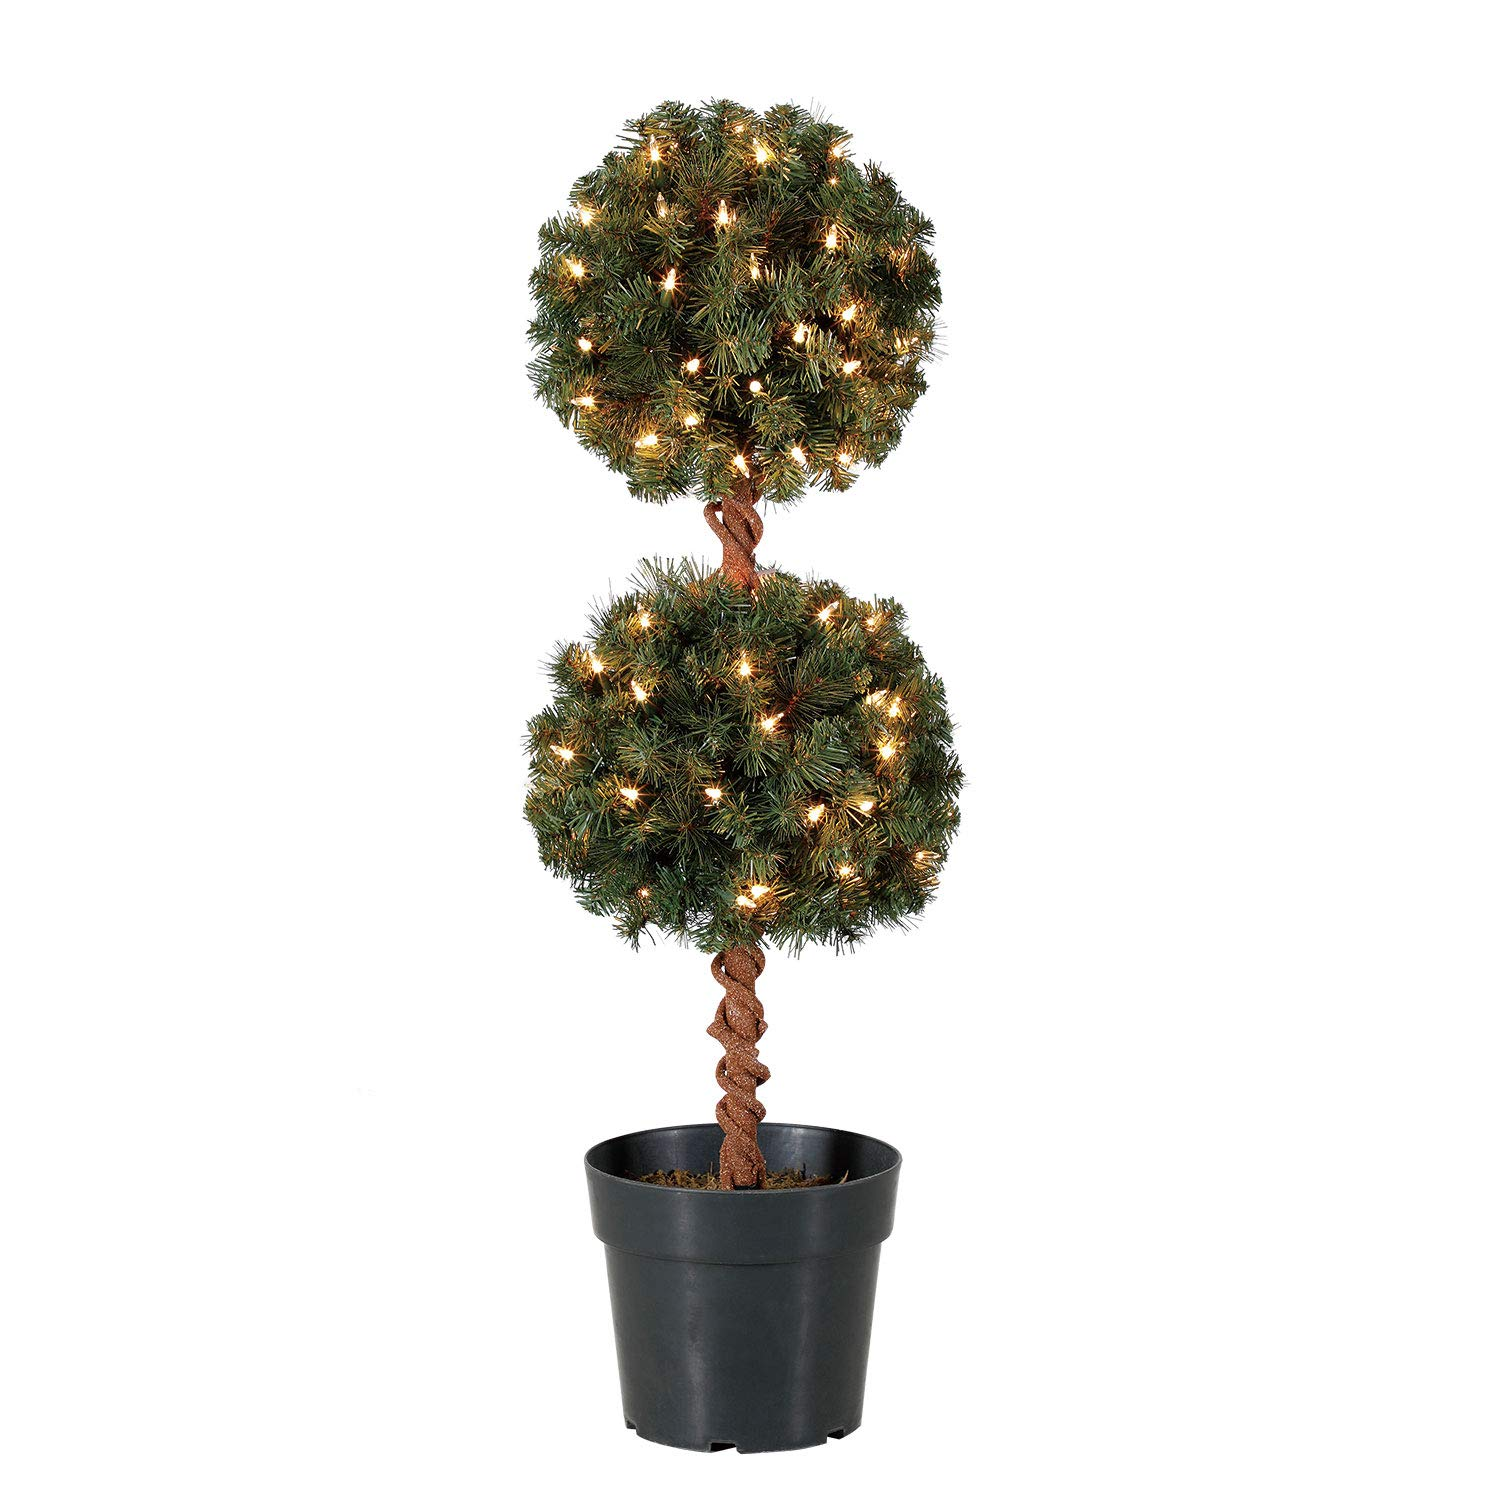 Home Heritage 3 Foot Artificial Topiary Tree w/Clear Lights for Entryway Decor